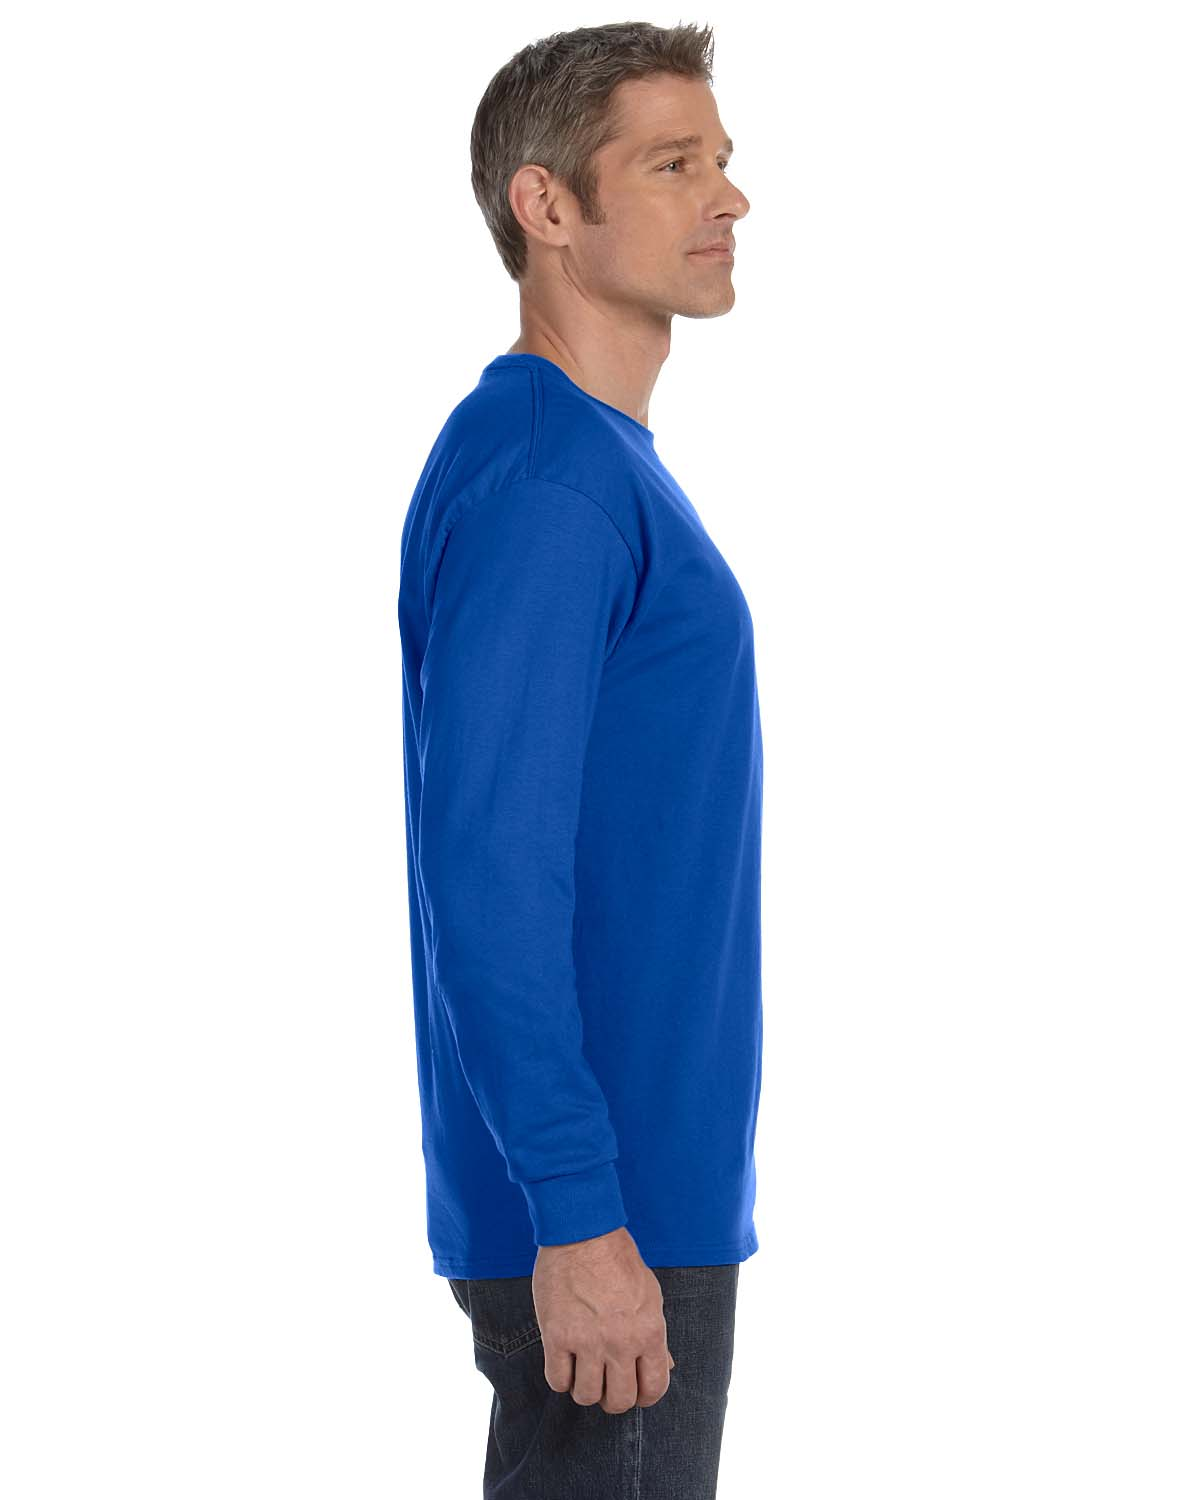 Gildan-Mens-T-Shirt-Long-Sleeve-Heavy-Cotton-5-3-oz-S-XL-R-G540-5400 thumbnail 45